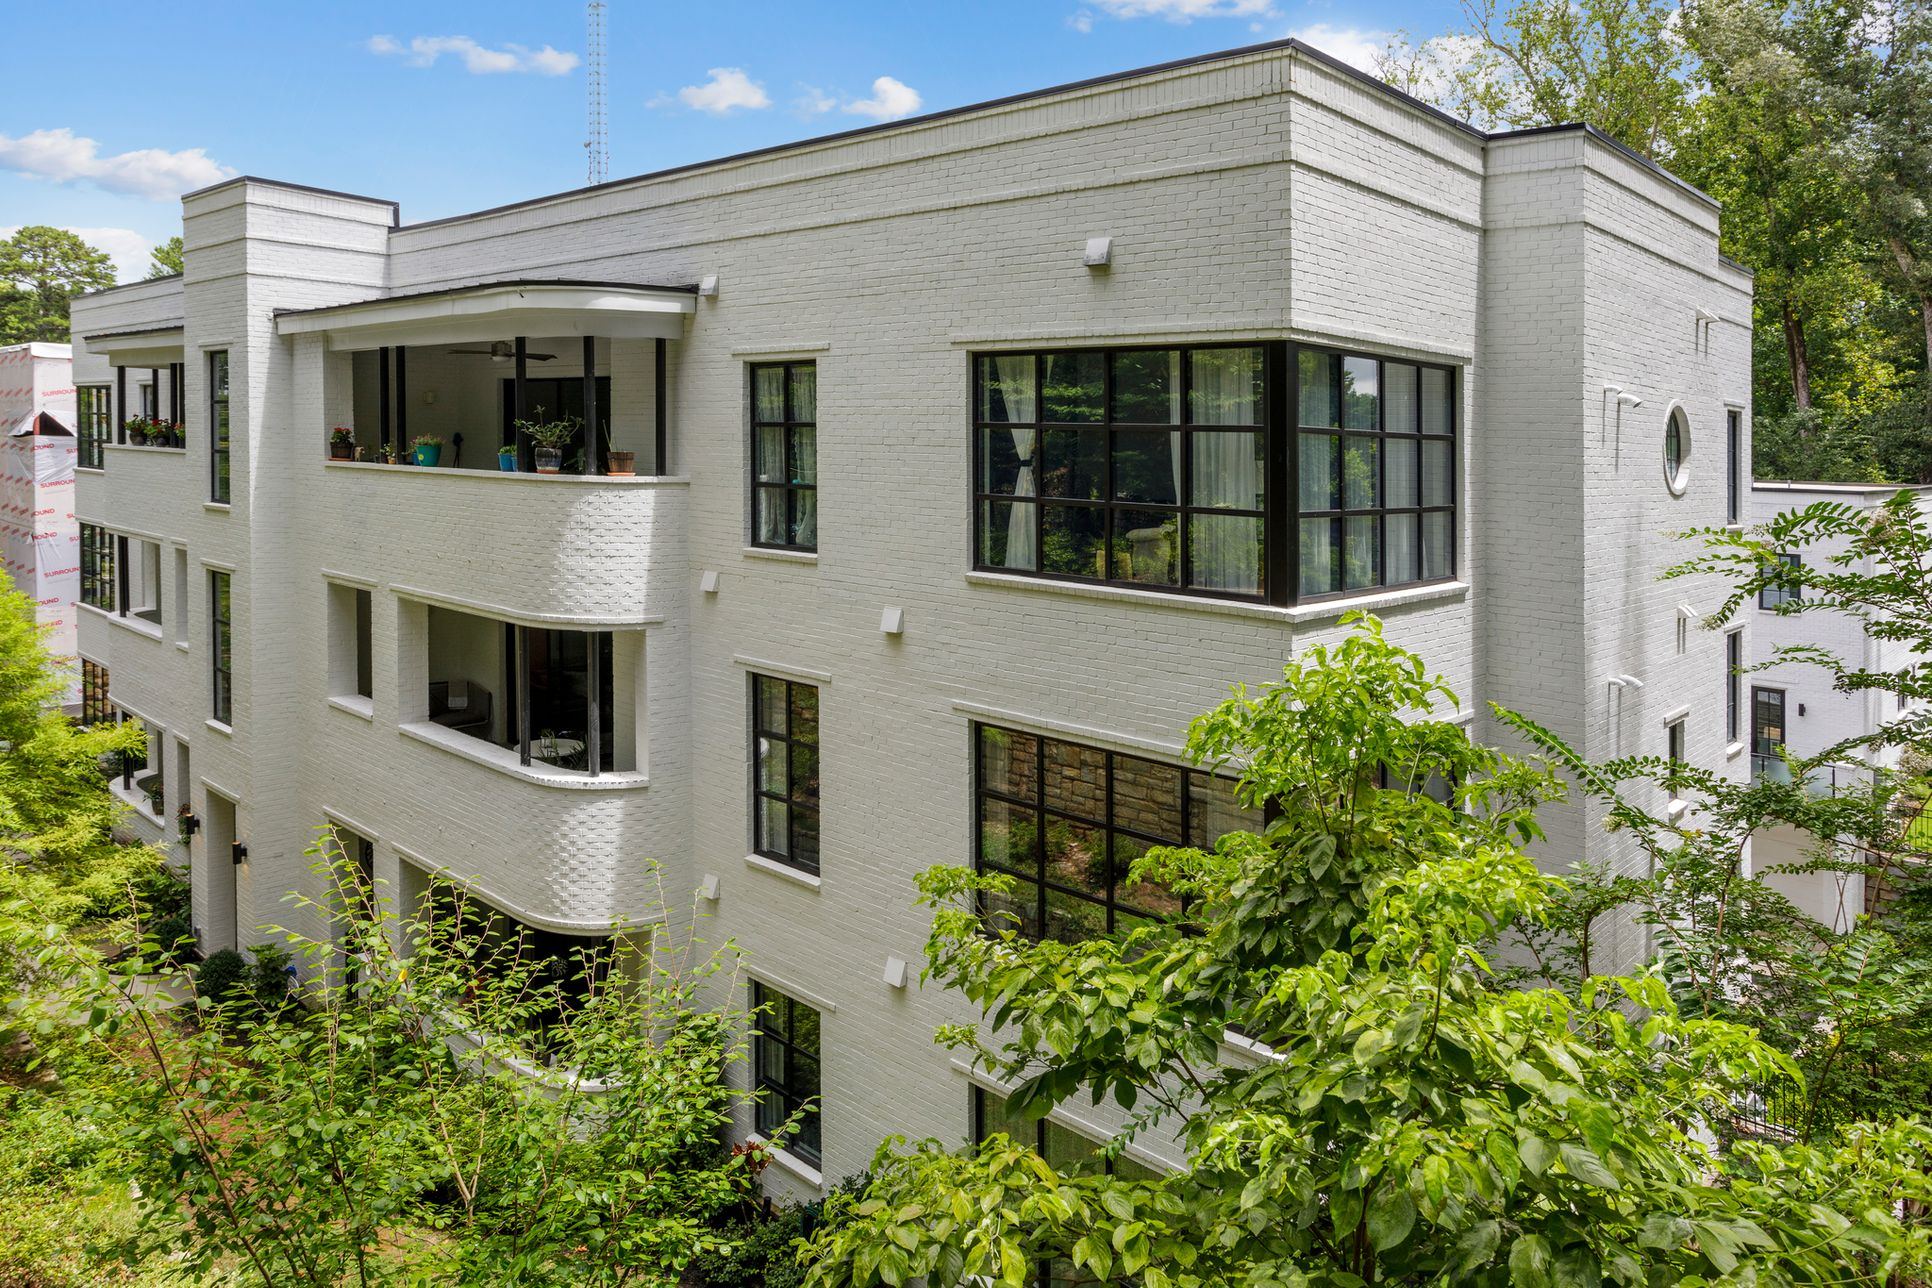 Luxury Art Moderne Condo Flats:with a Premier Druid Hills Address